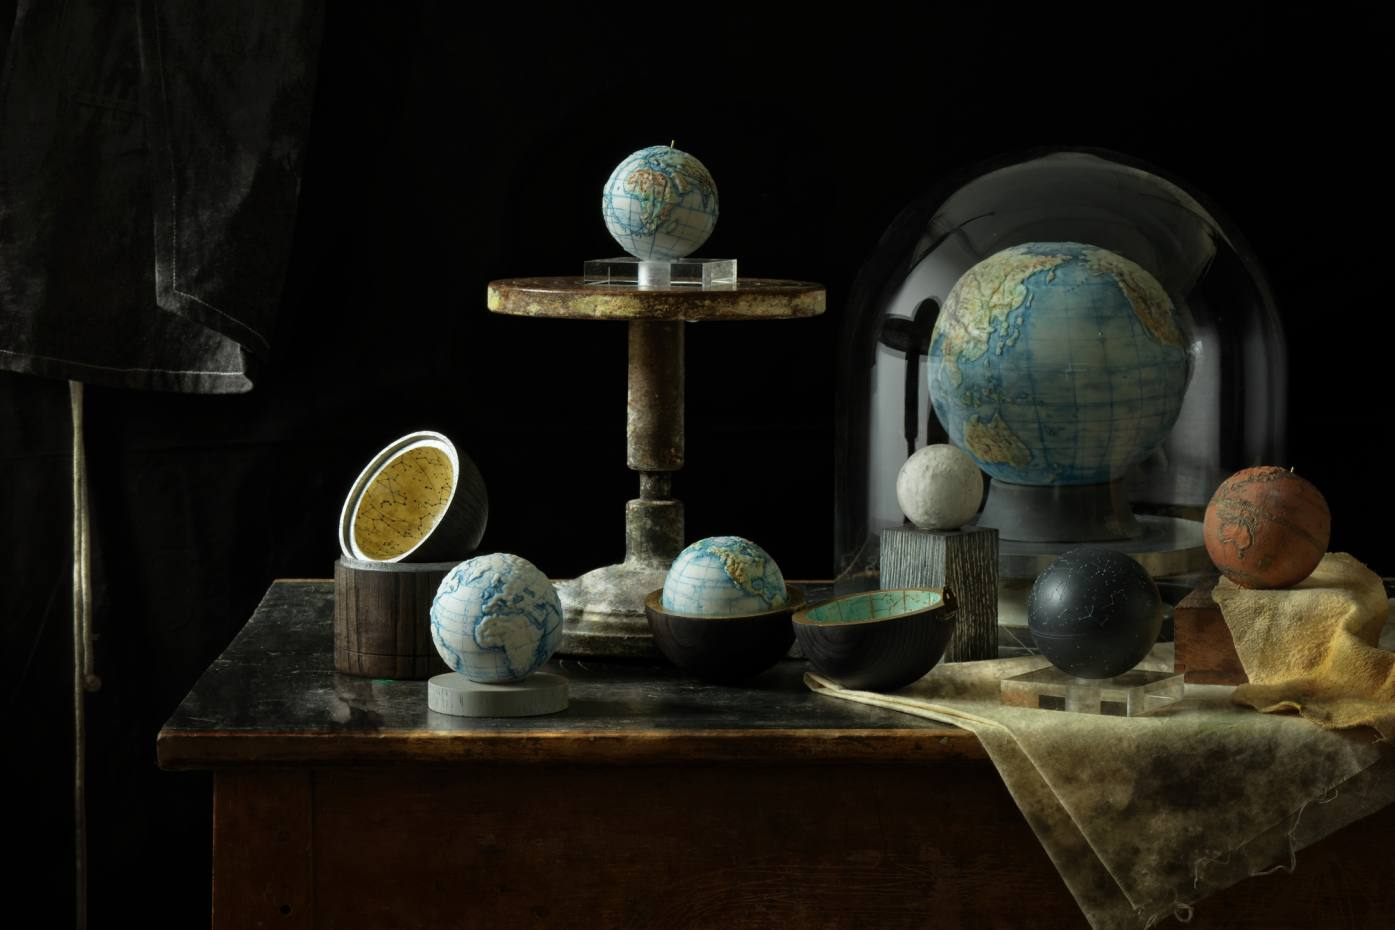 Rutt decorates her globes using ceramic stains and metal oxides